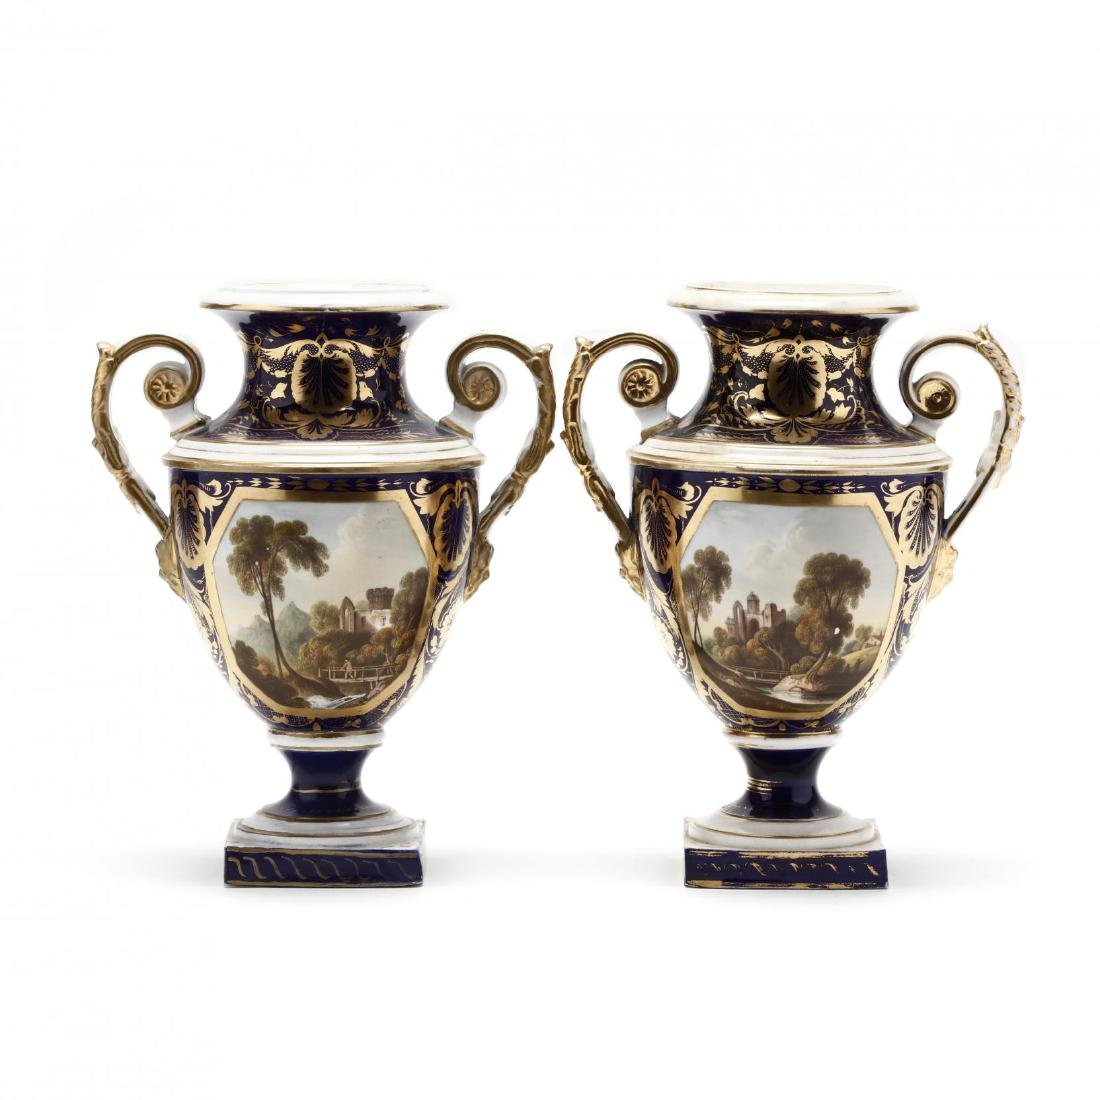 Bloor Derby, Pair of Mantle Urns